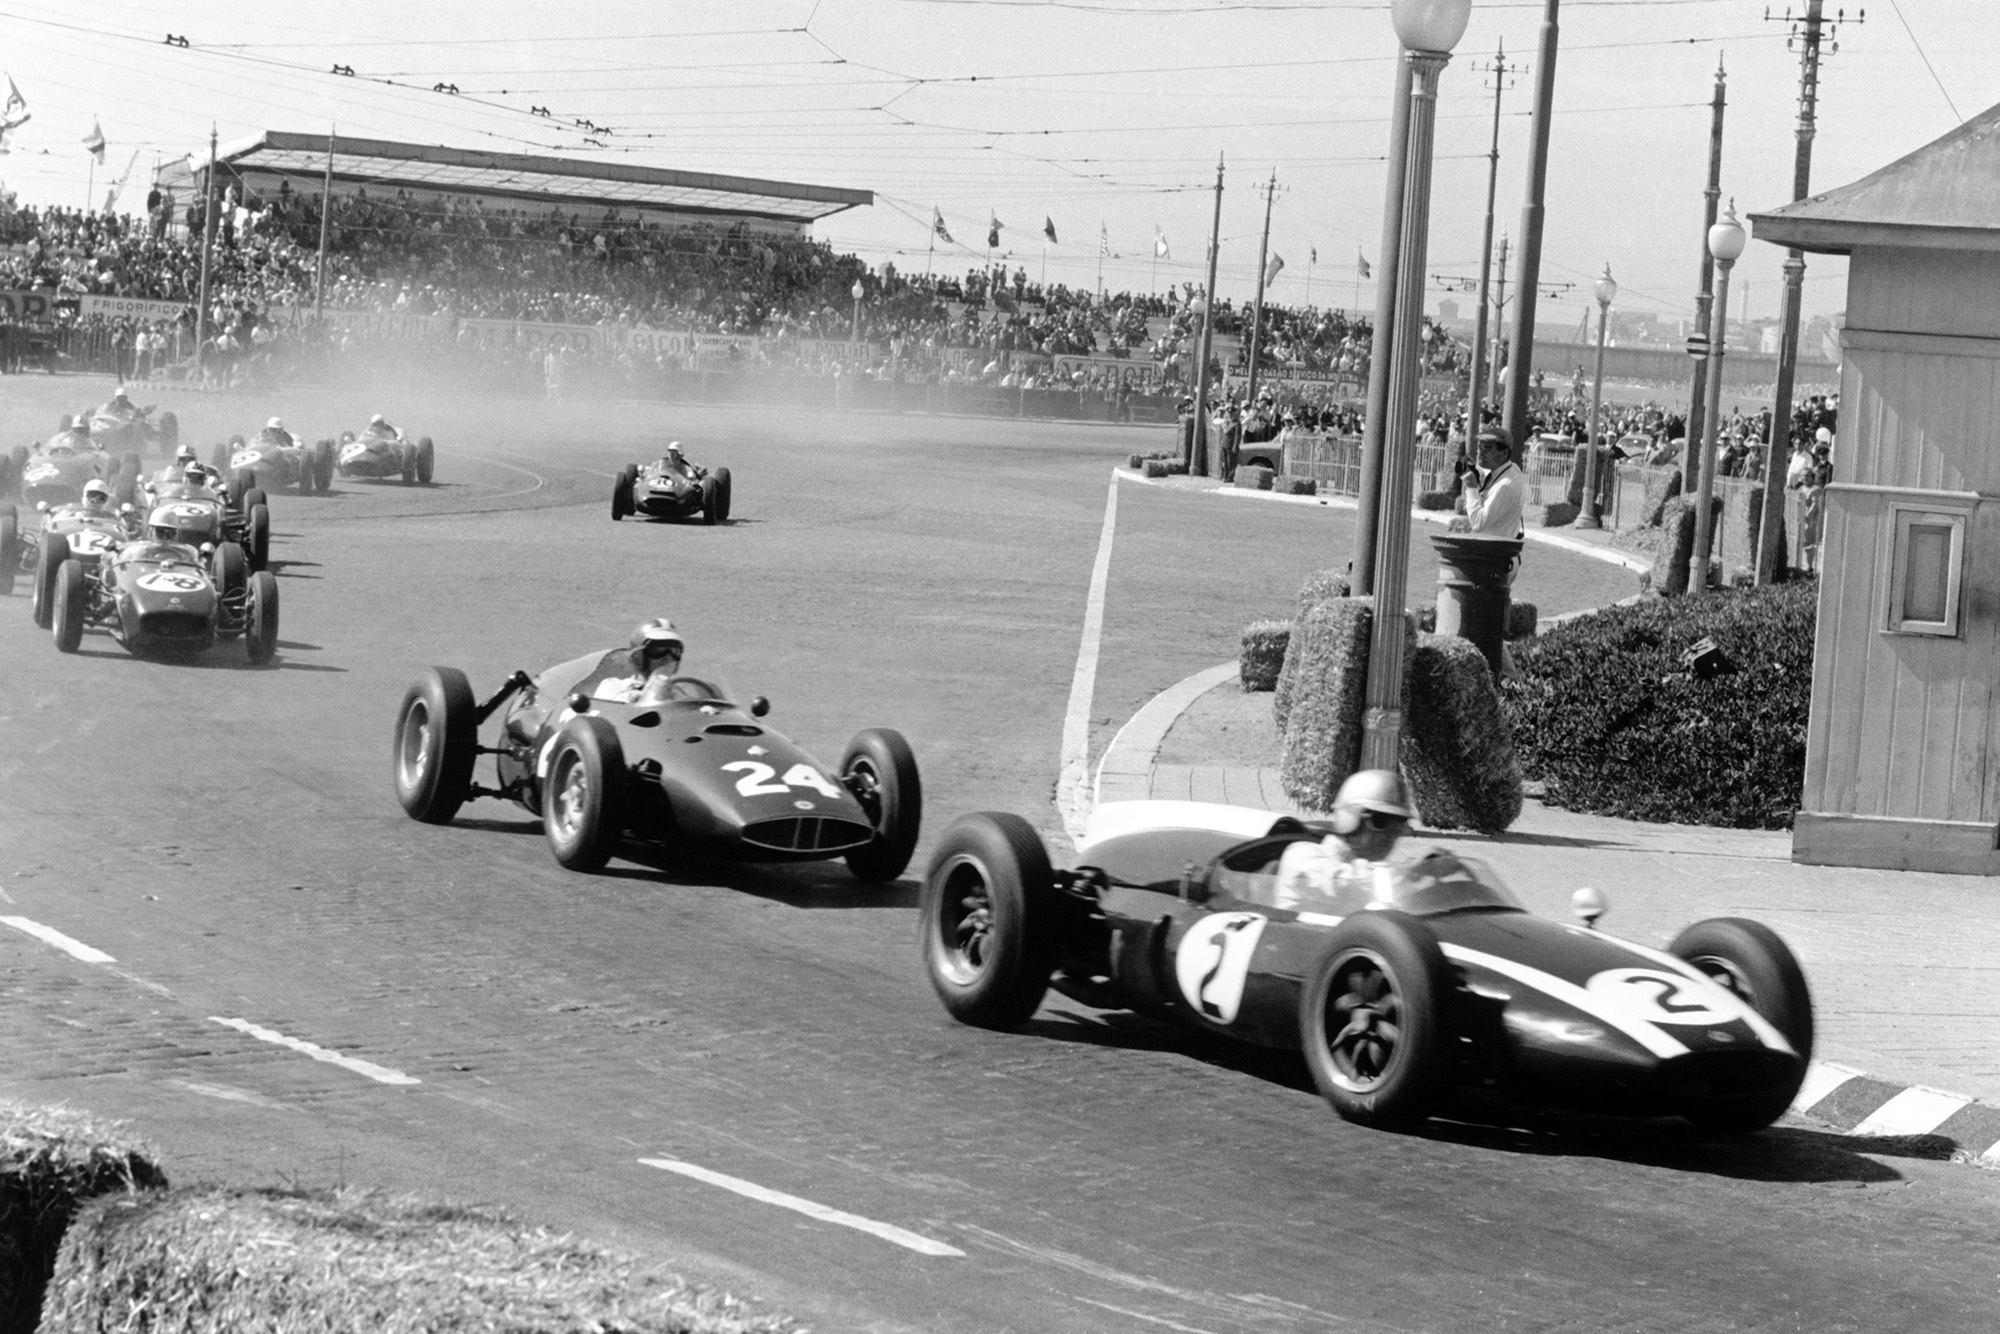 Brabham leads the field at the start